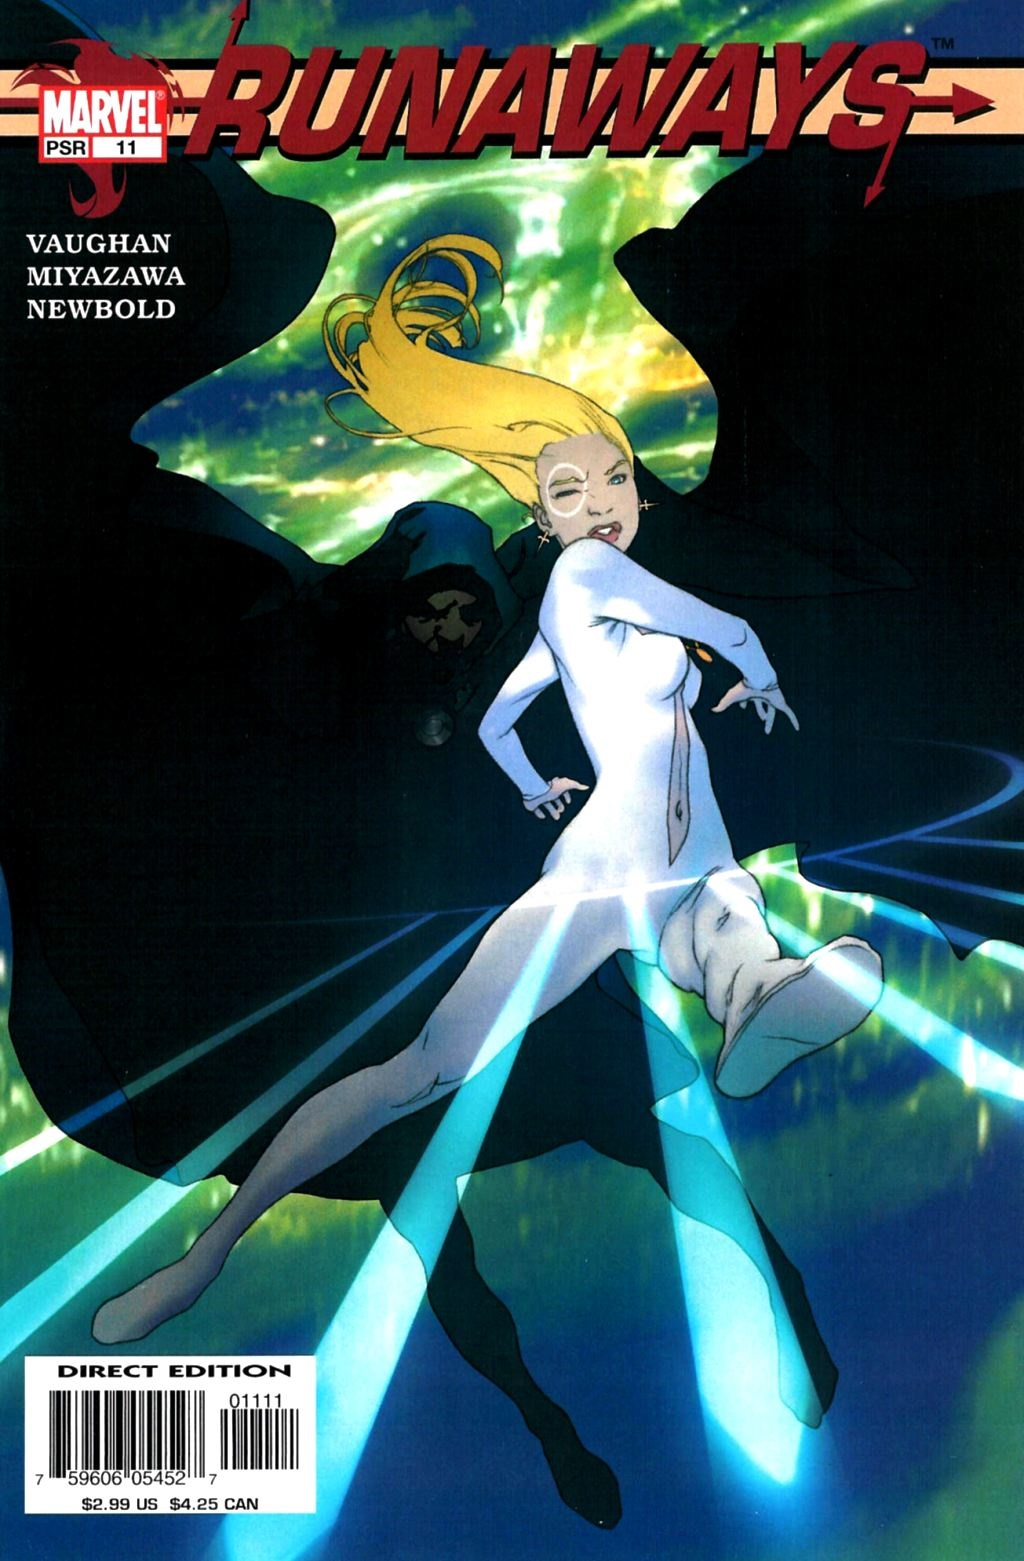 Speculator Corner: When Cloak & Dagger First Crossed Over With The Runaways...